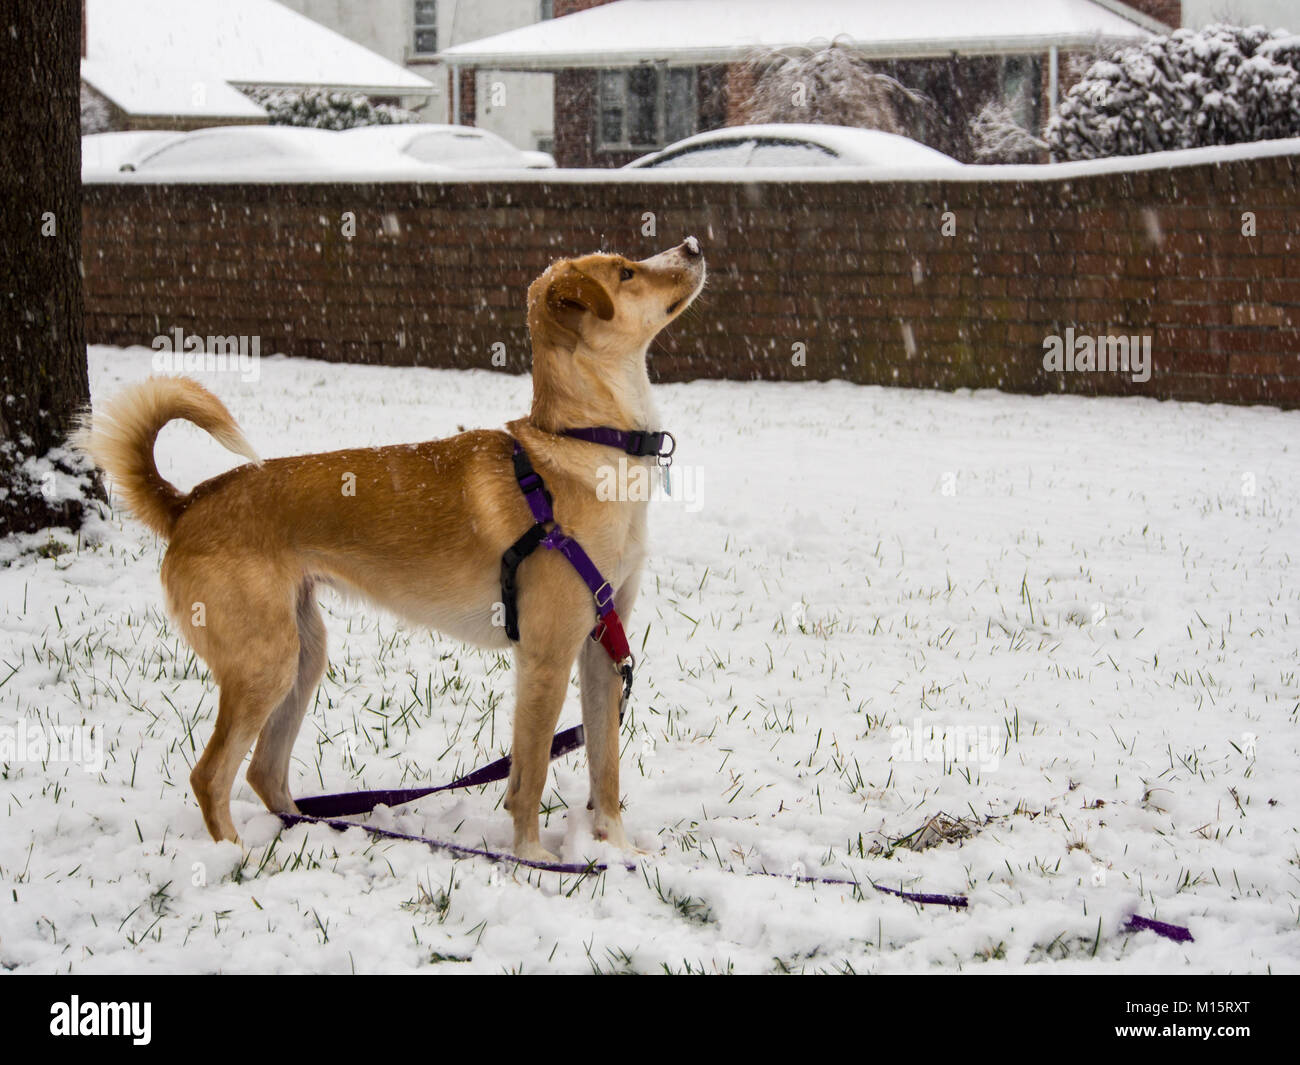 Curious Dog Watching Snow Fall, Standing in Yard - Stock Image